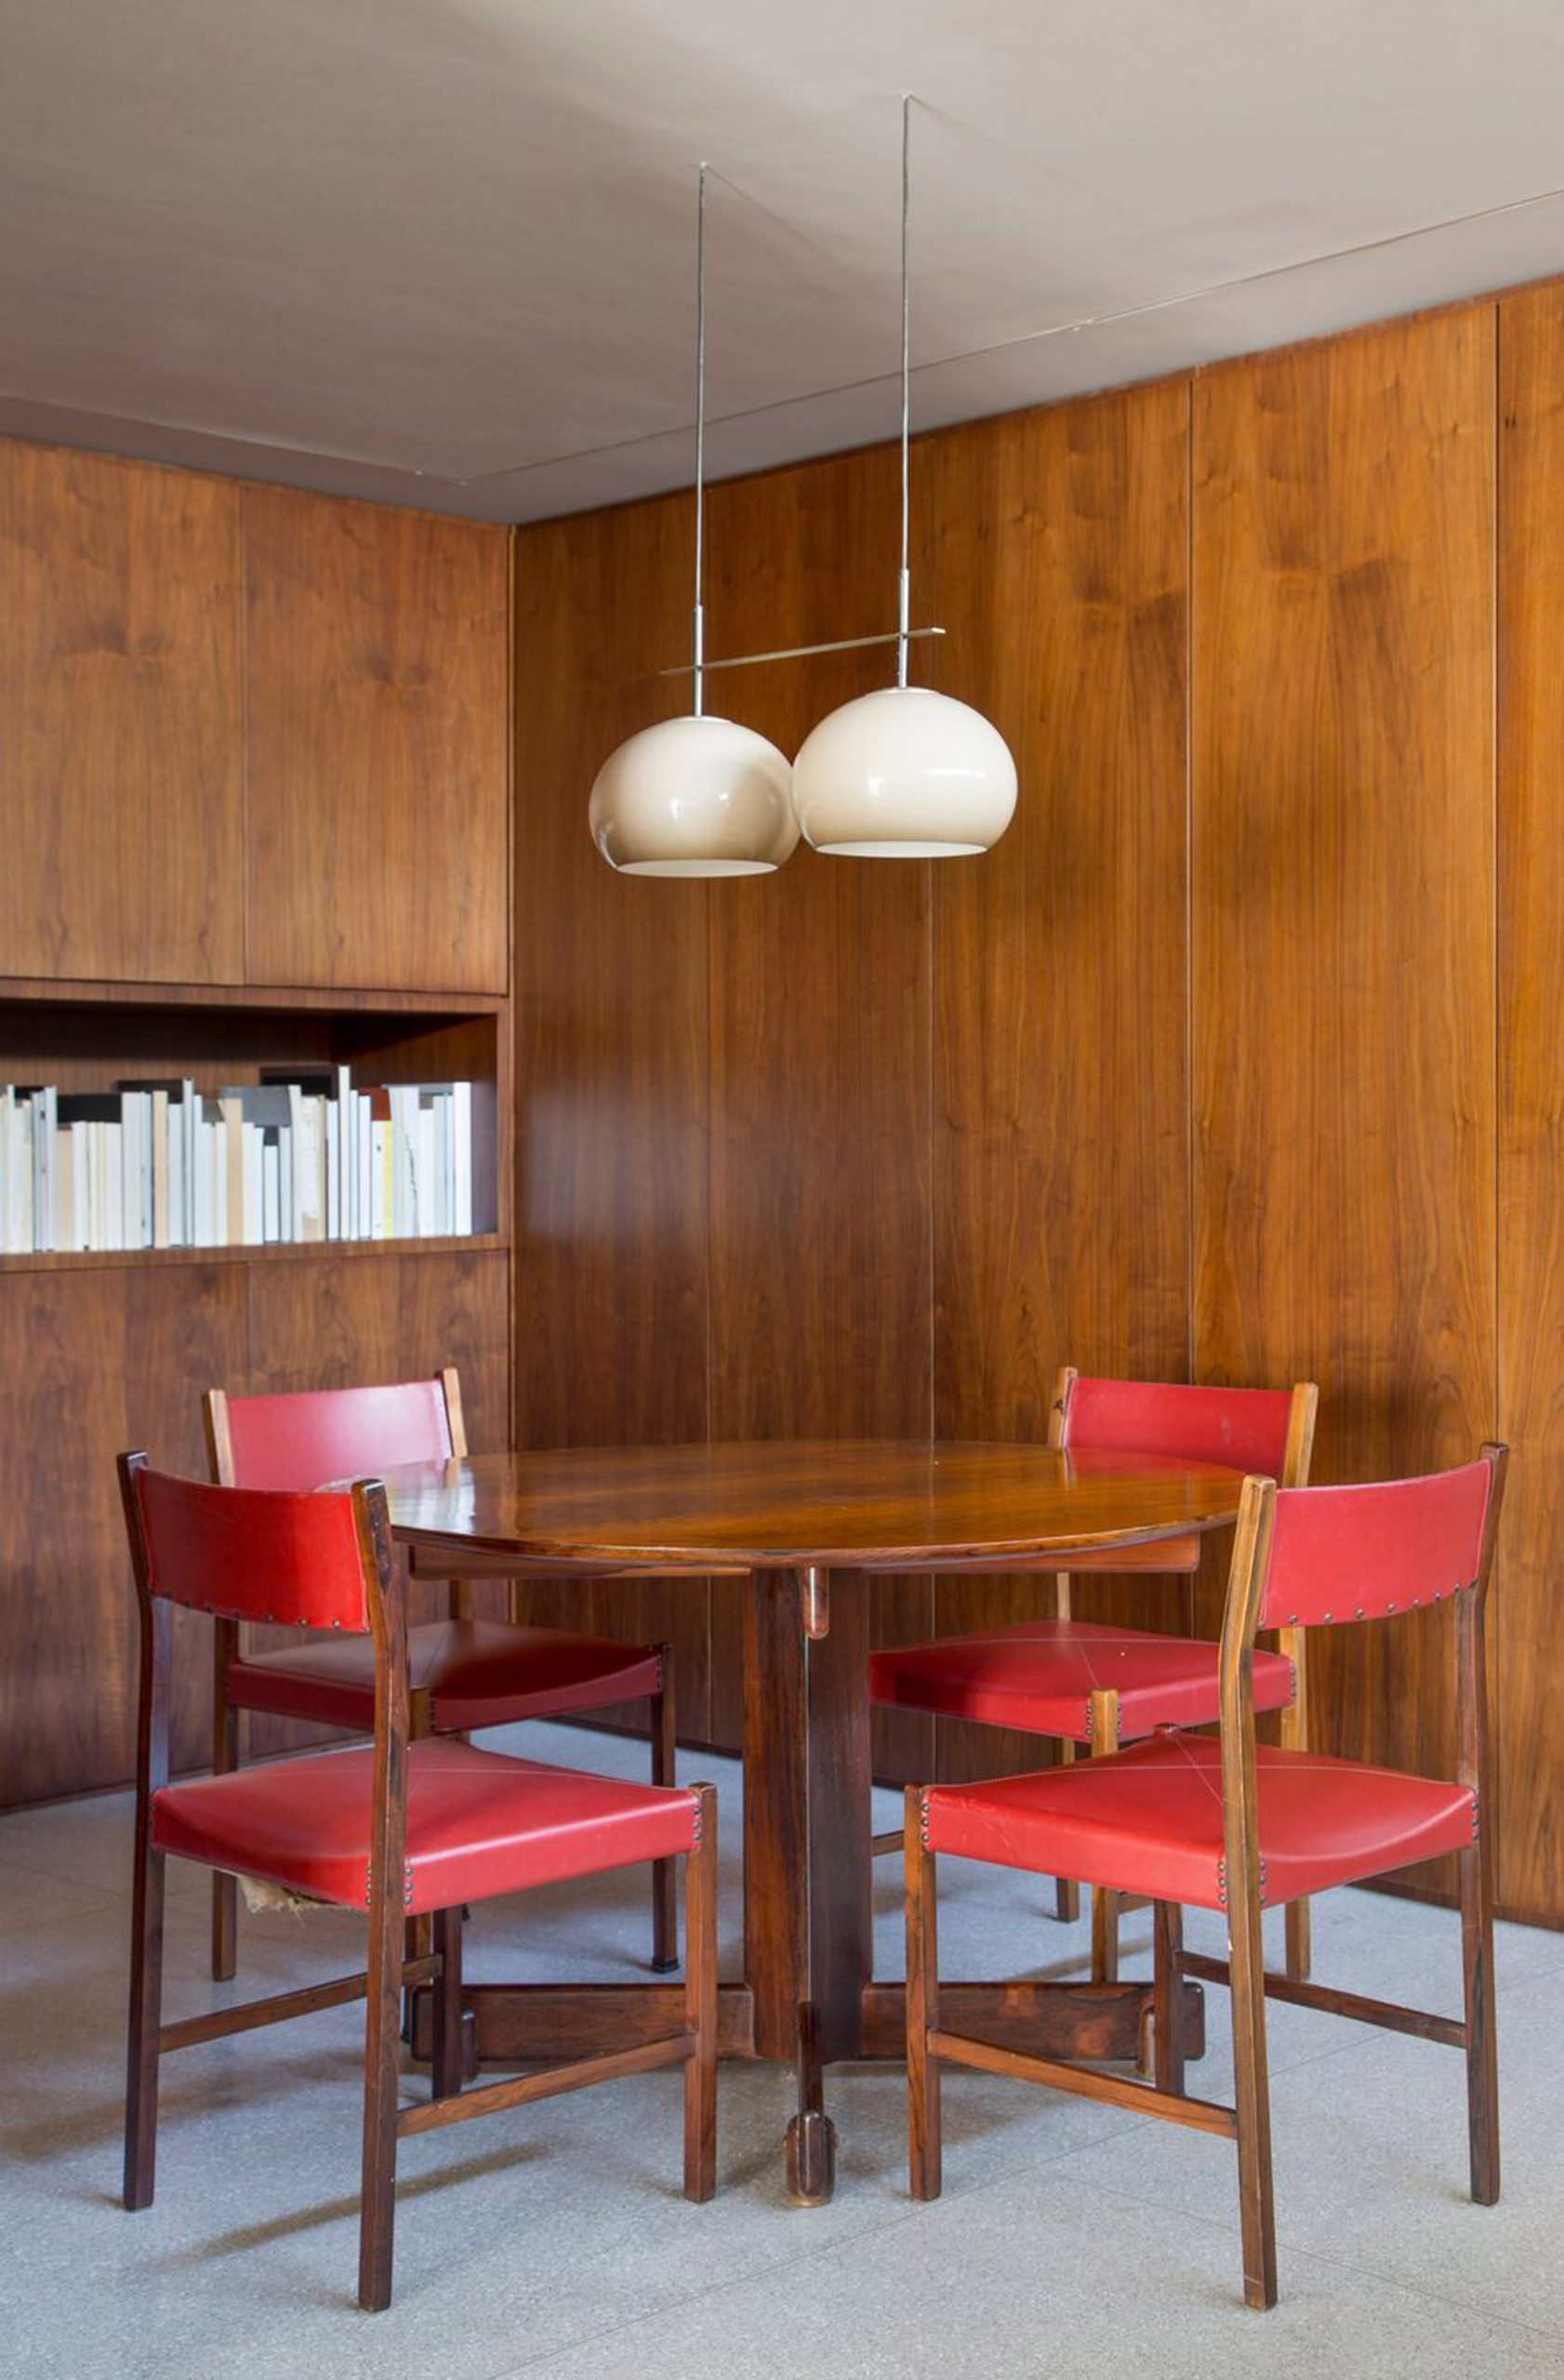 A table by Sergio Rodrigues features in the kitchen